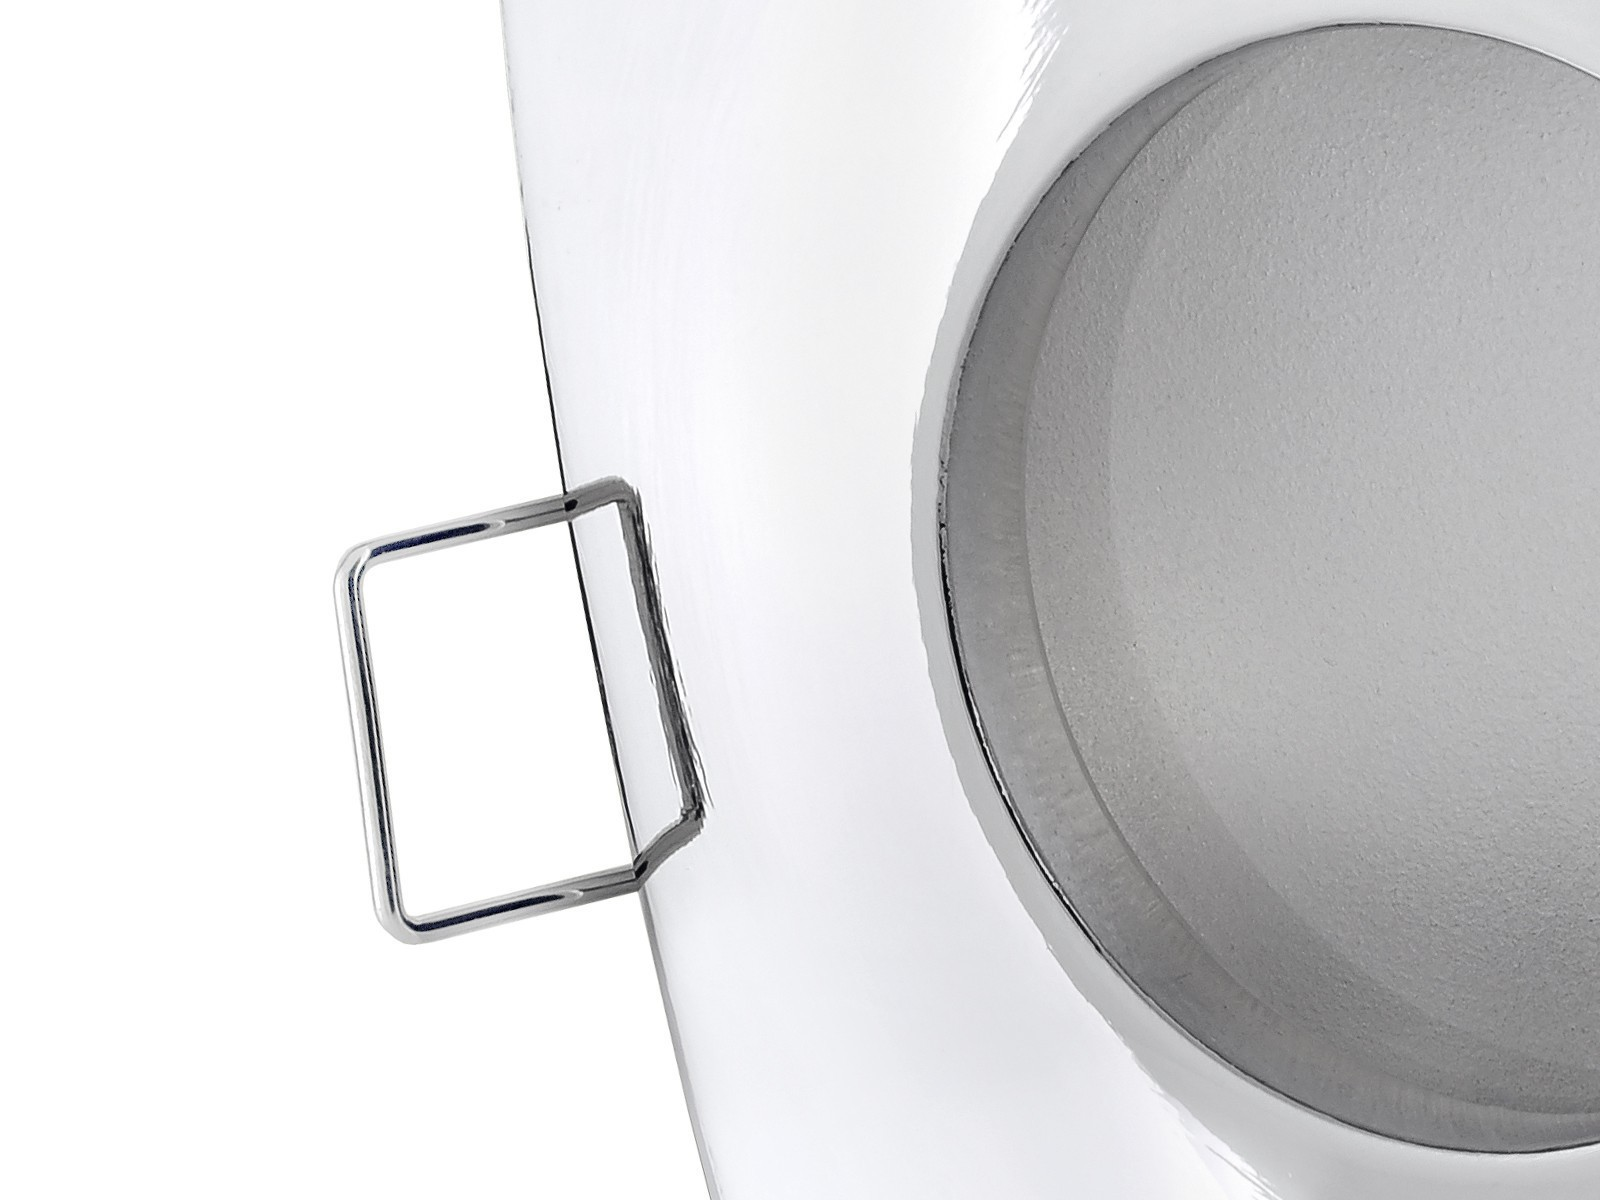 dusche led strahler qw 1 feuchtraum led einbauspot bad dusche chrom - Led Strahler In Der Dusche